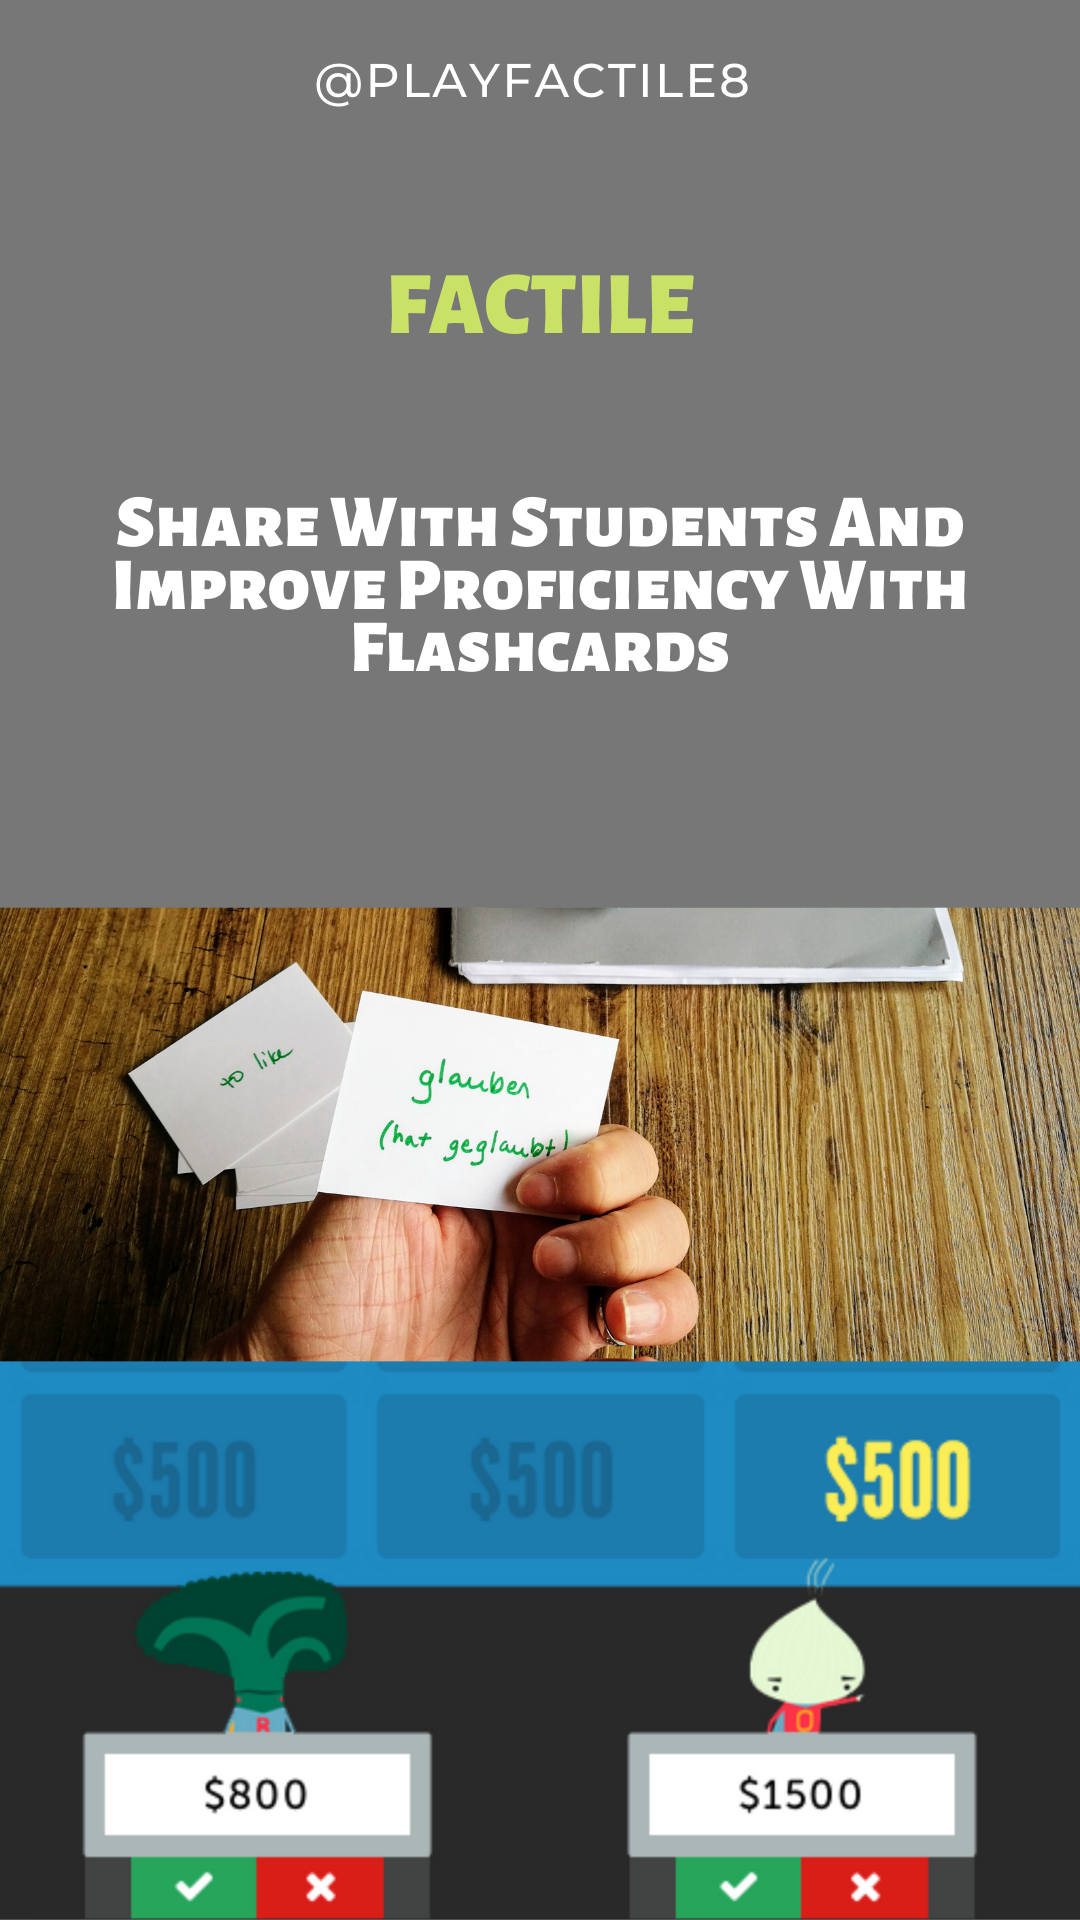 Share With Students And Improve Proficiency With